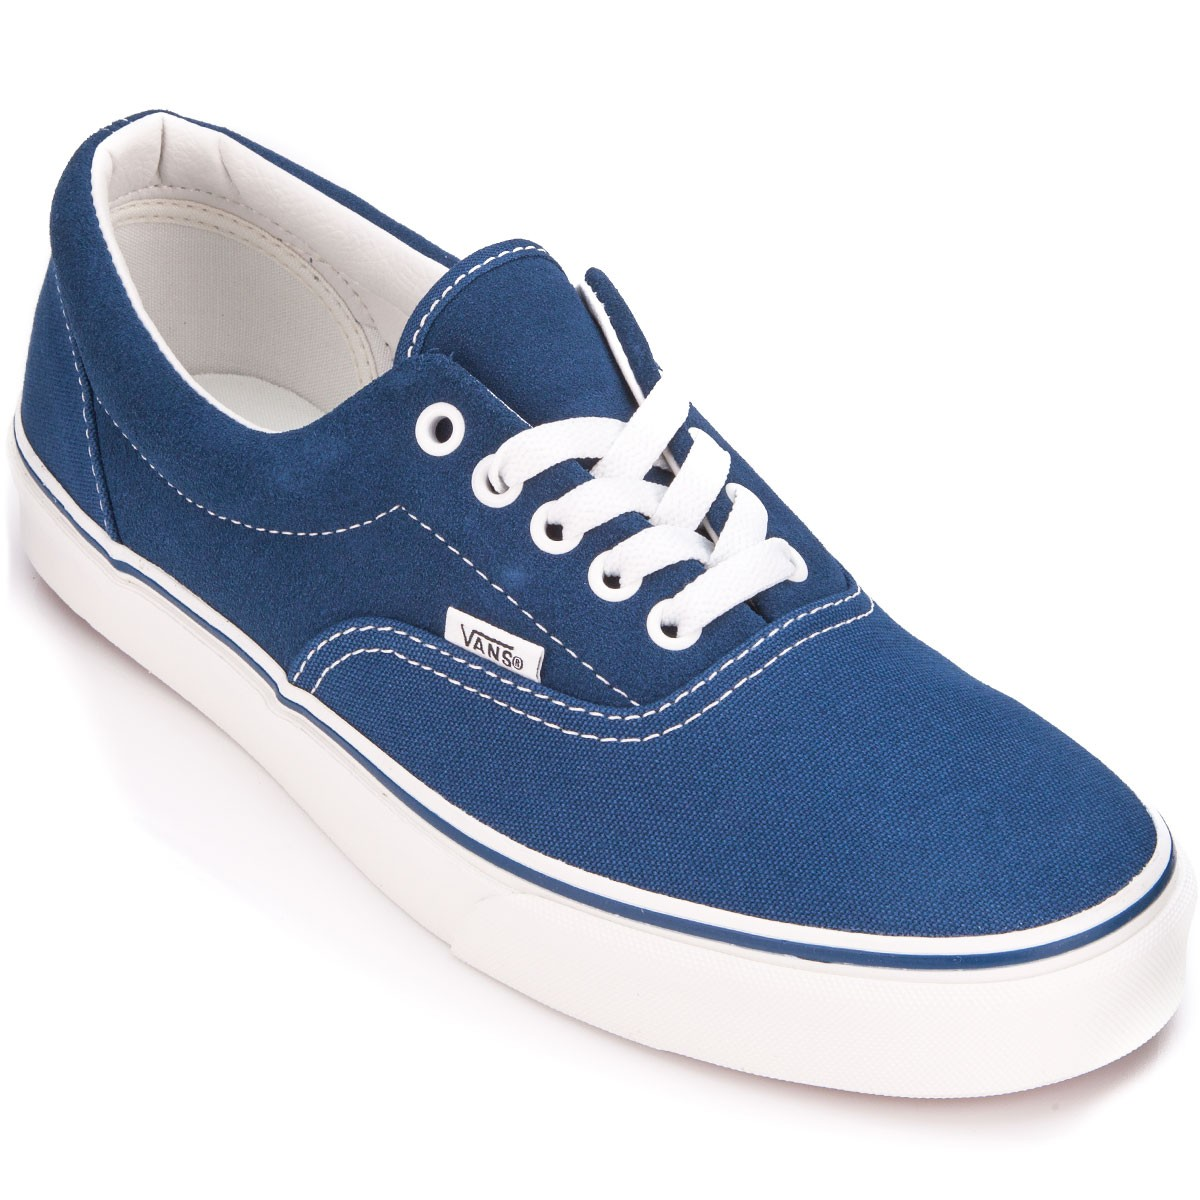 Skate shoes or skateboard shoes are a type of footwear specifically designed and manufactured for use in skateboarding. While numerous non-skaters choose to wear skate shoes, the design of the skate shoe includes many features designed especially for use in skateboarding, including a vulcanized rubber or polyurethane sole with minimal tread.